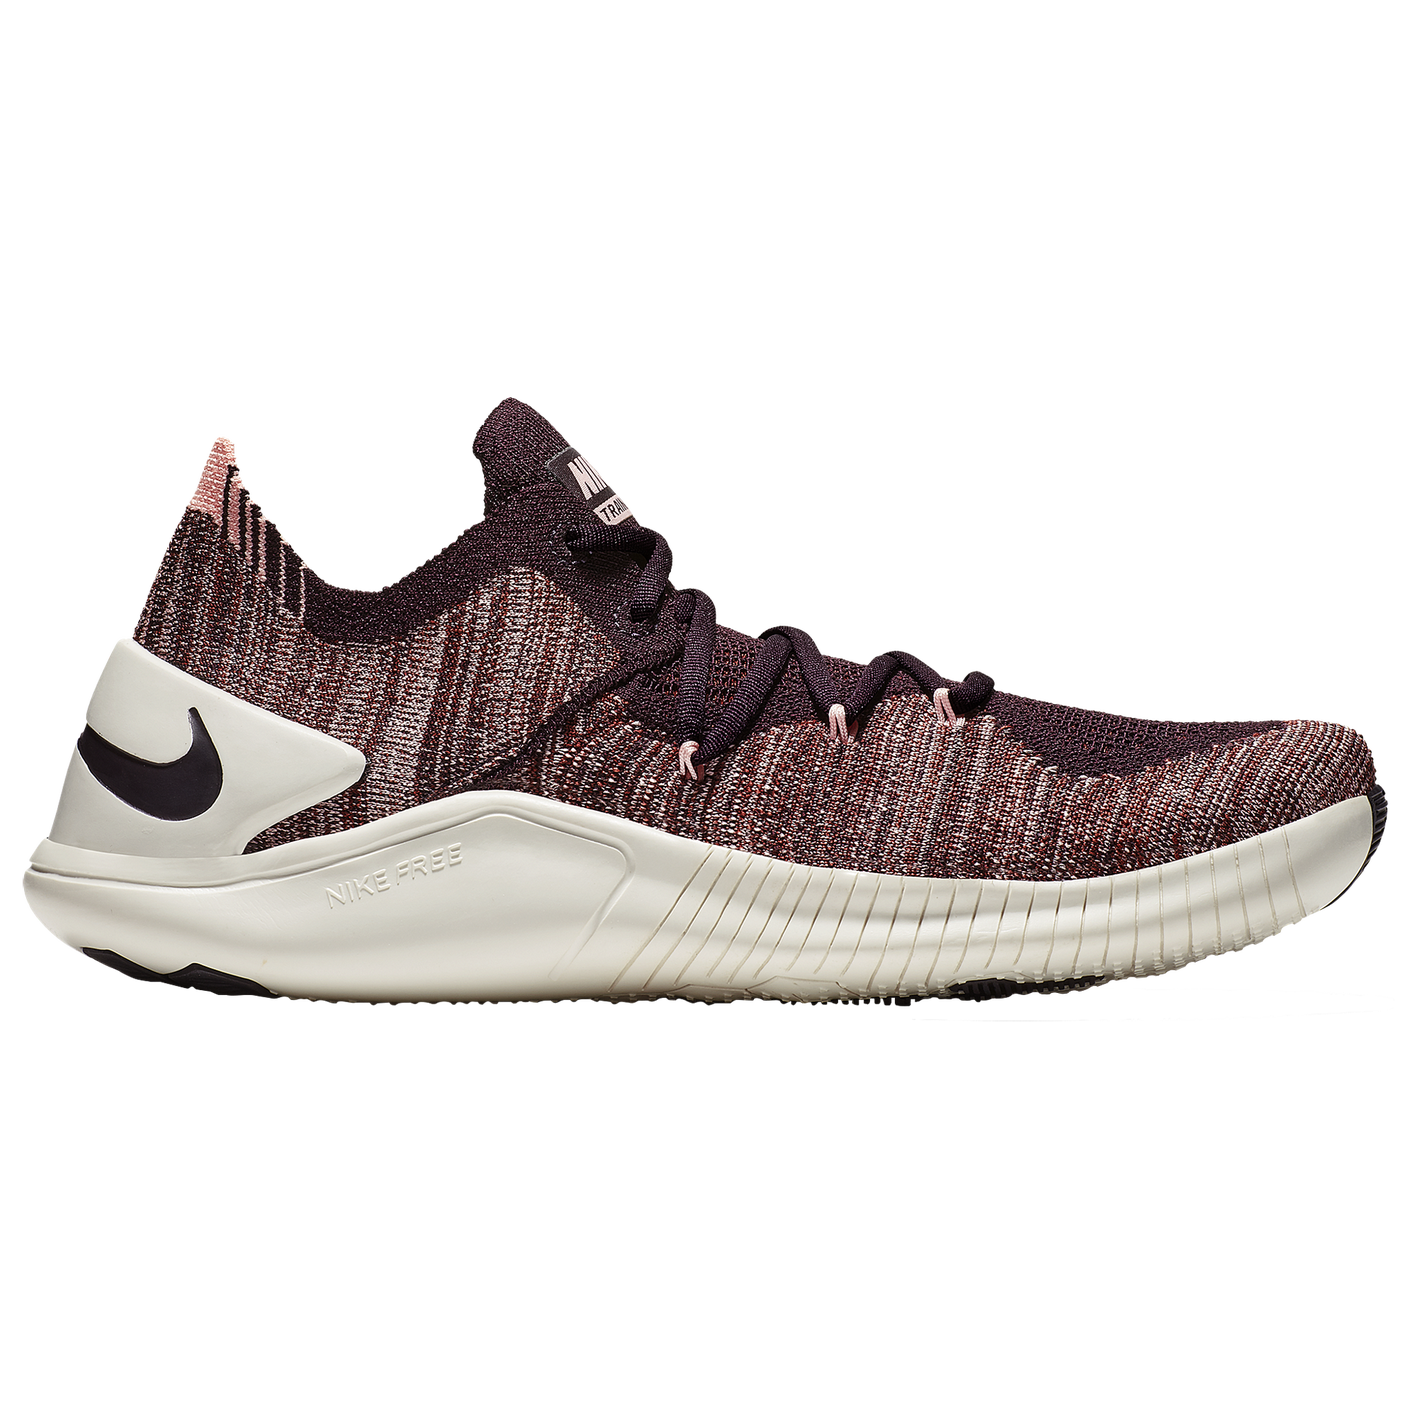 58a37e707d82a Nike Free TR Flyknit 3 - Women s - Training - Shoes - Burgundy Ash ...